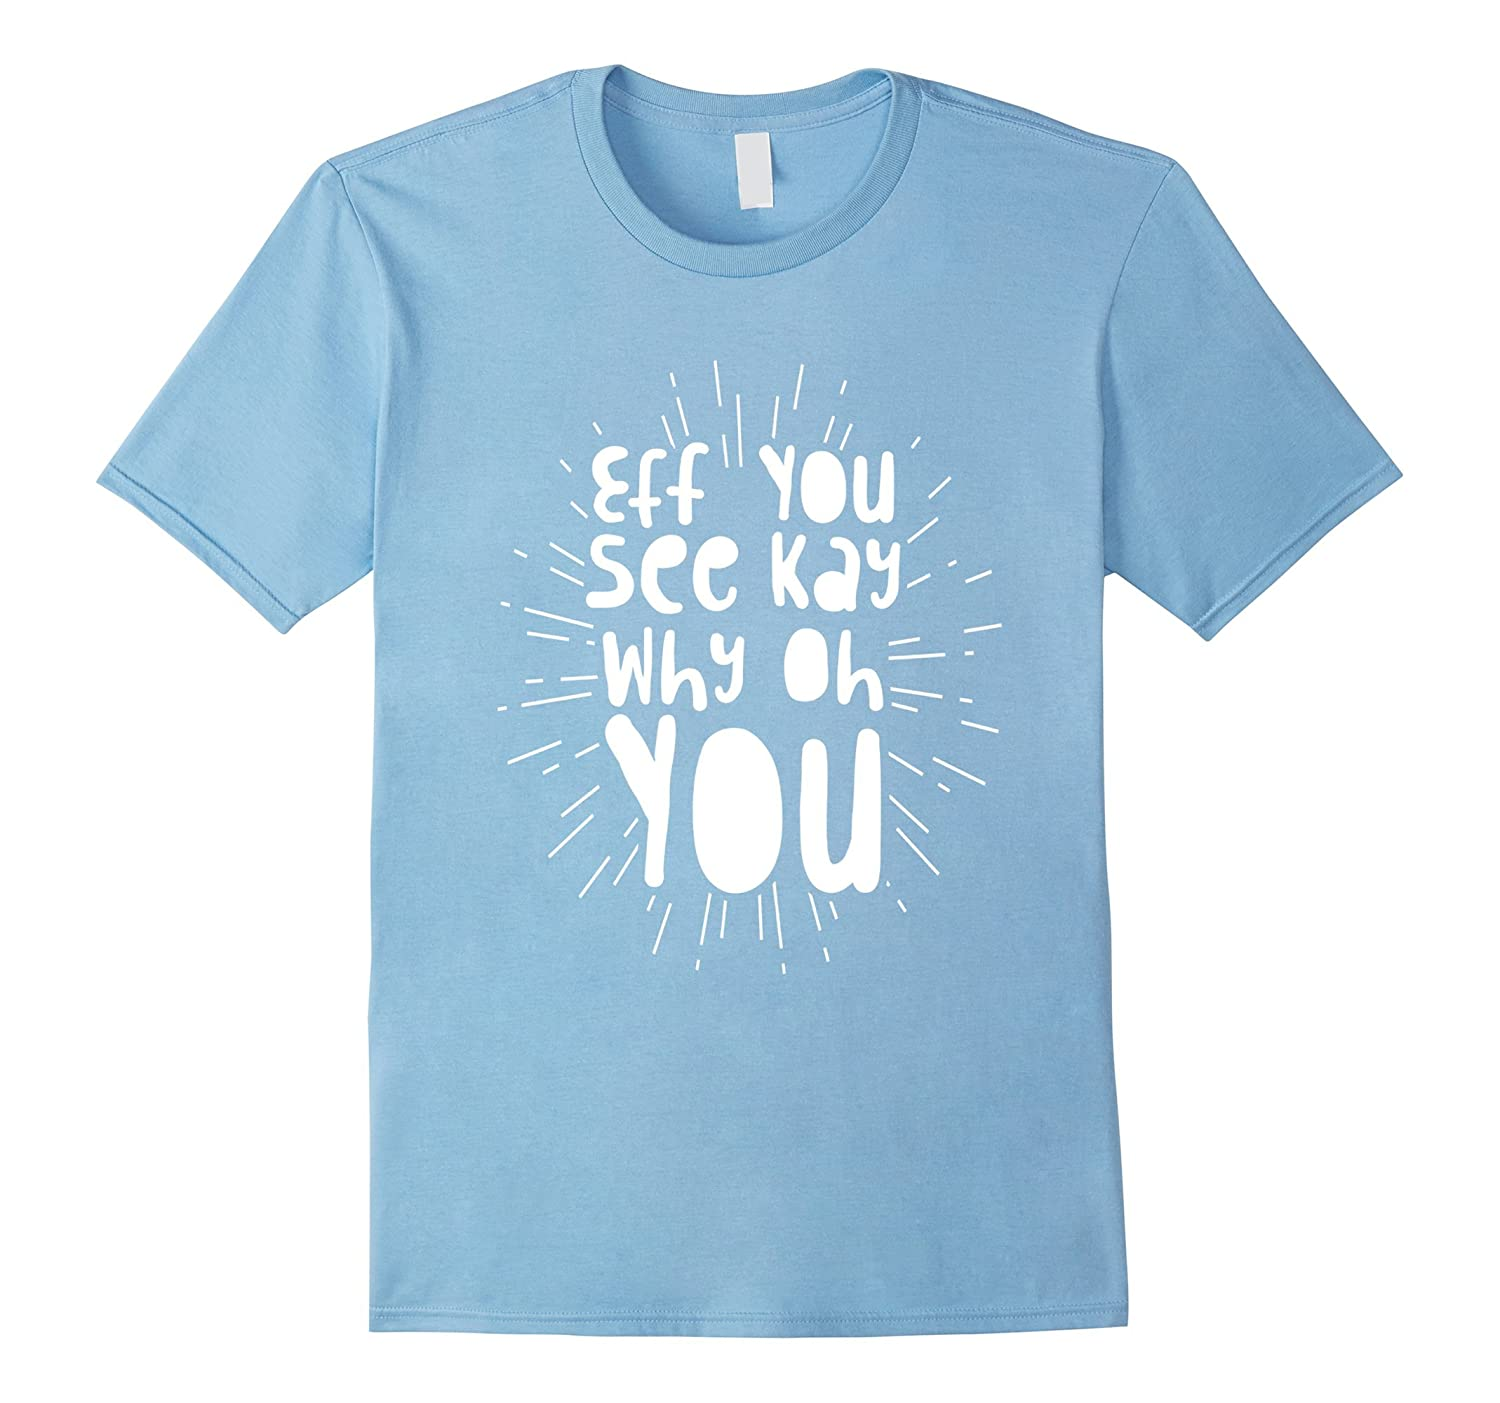 'Eff You See Kay Why Oh You' Funny Sarcastic Attitude Shirt-Art